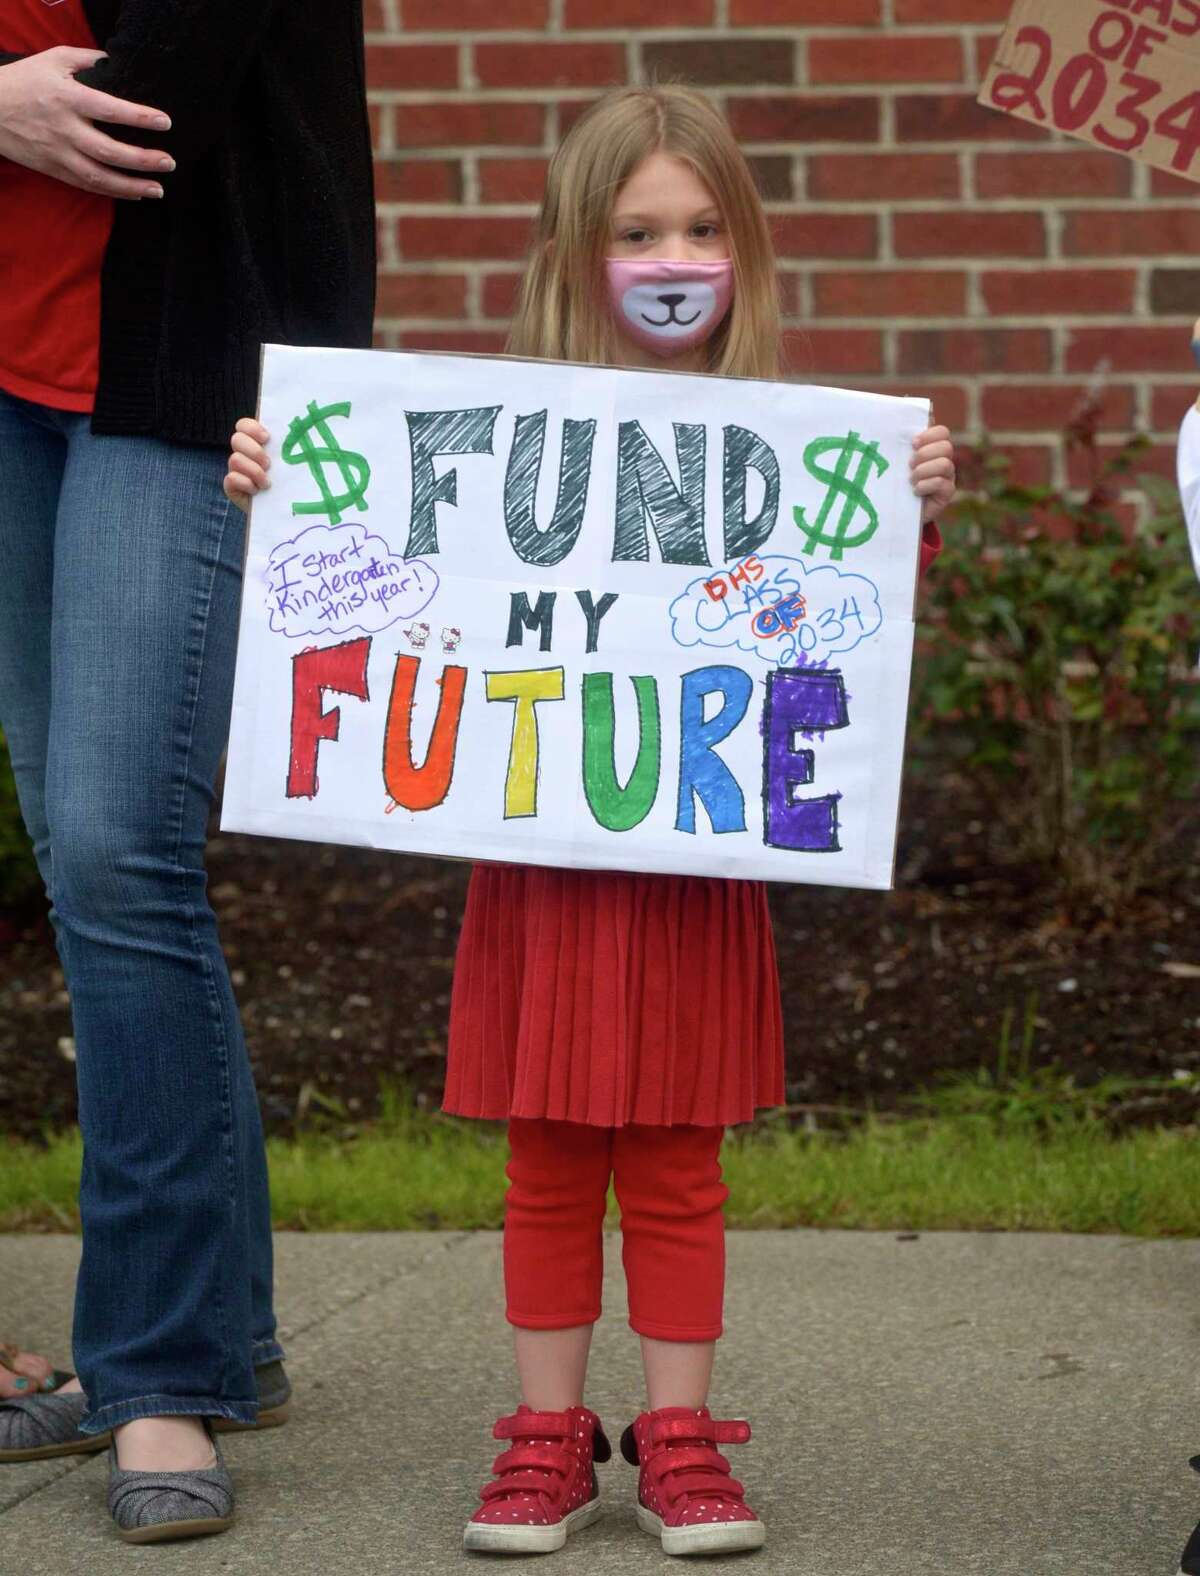 Gloria Saunders, age 5, daughter of Rachel Saunders, who works in the middle schools, protested to support city schools along with her mom at City Hall Tuesday. They and other Danbury groups rallied to demand an increase in the school budget. May 4, 2021, in Danbury, Conn.